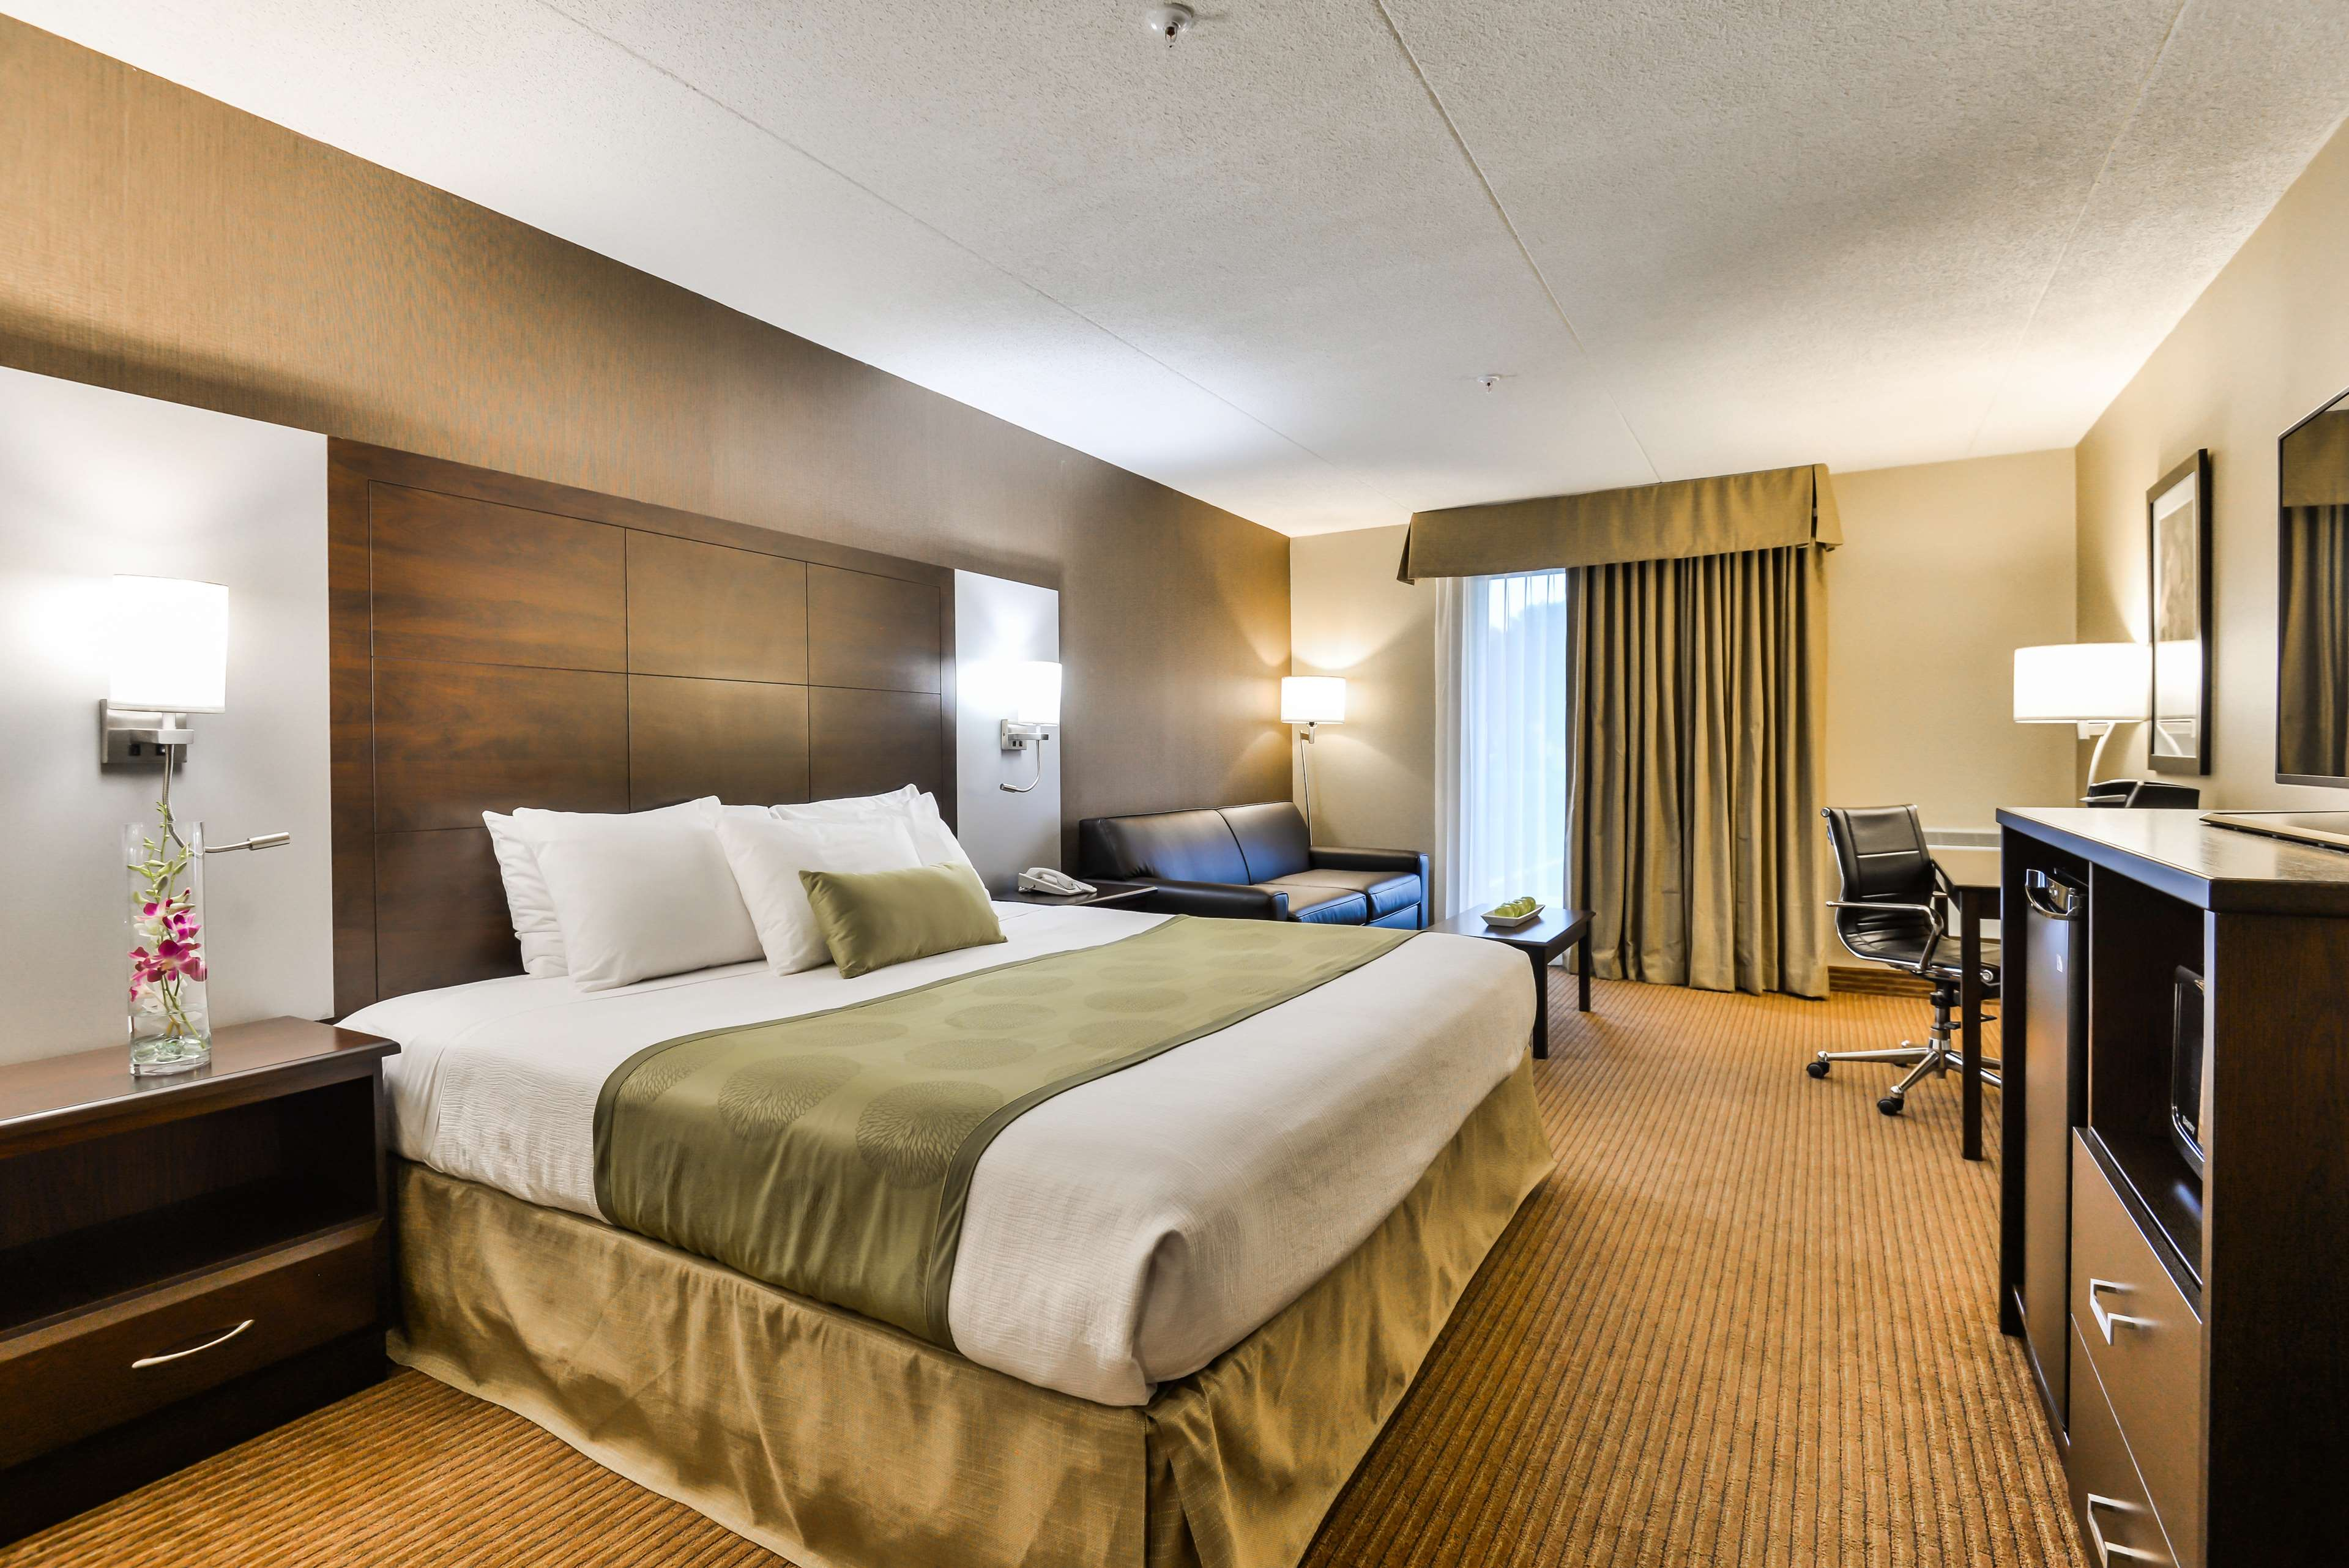 King Bed Guest Room Best Western Plus Leamington Hotel & Conference Centre Leamington (519)326-8646